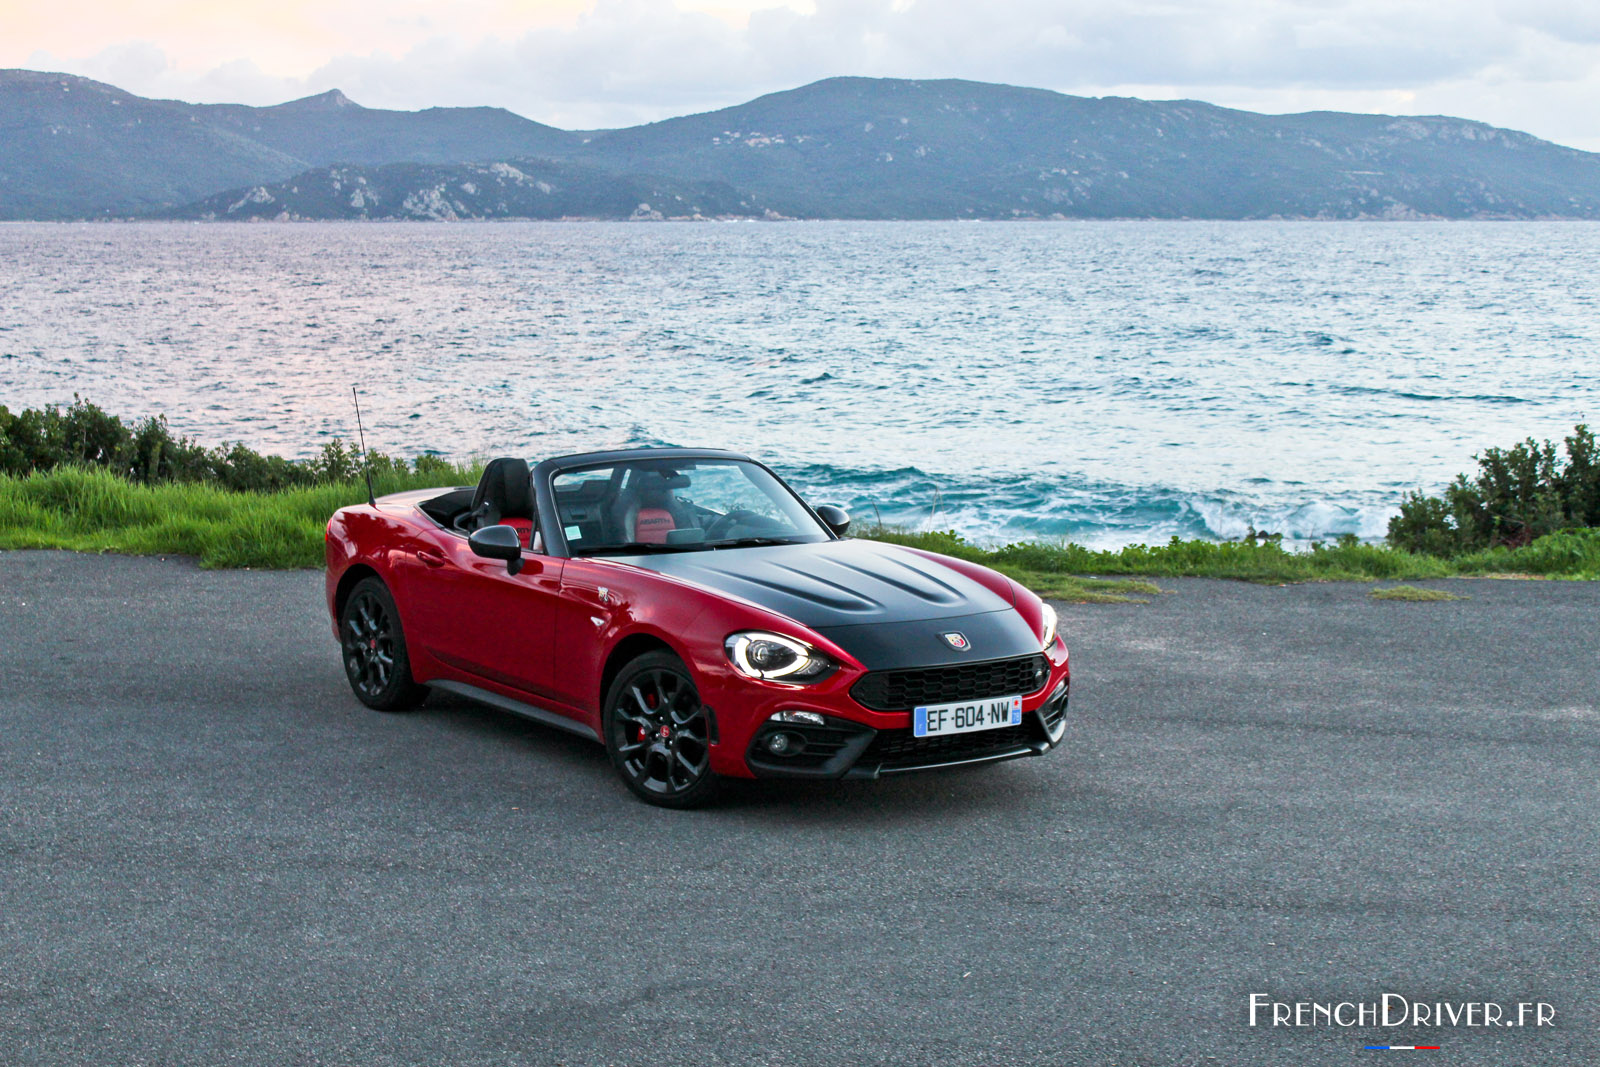 essai abarth 124 spider le scorpion est de retour french driver. Black Bedroom Furniture Sets. Home Design Ideas